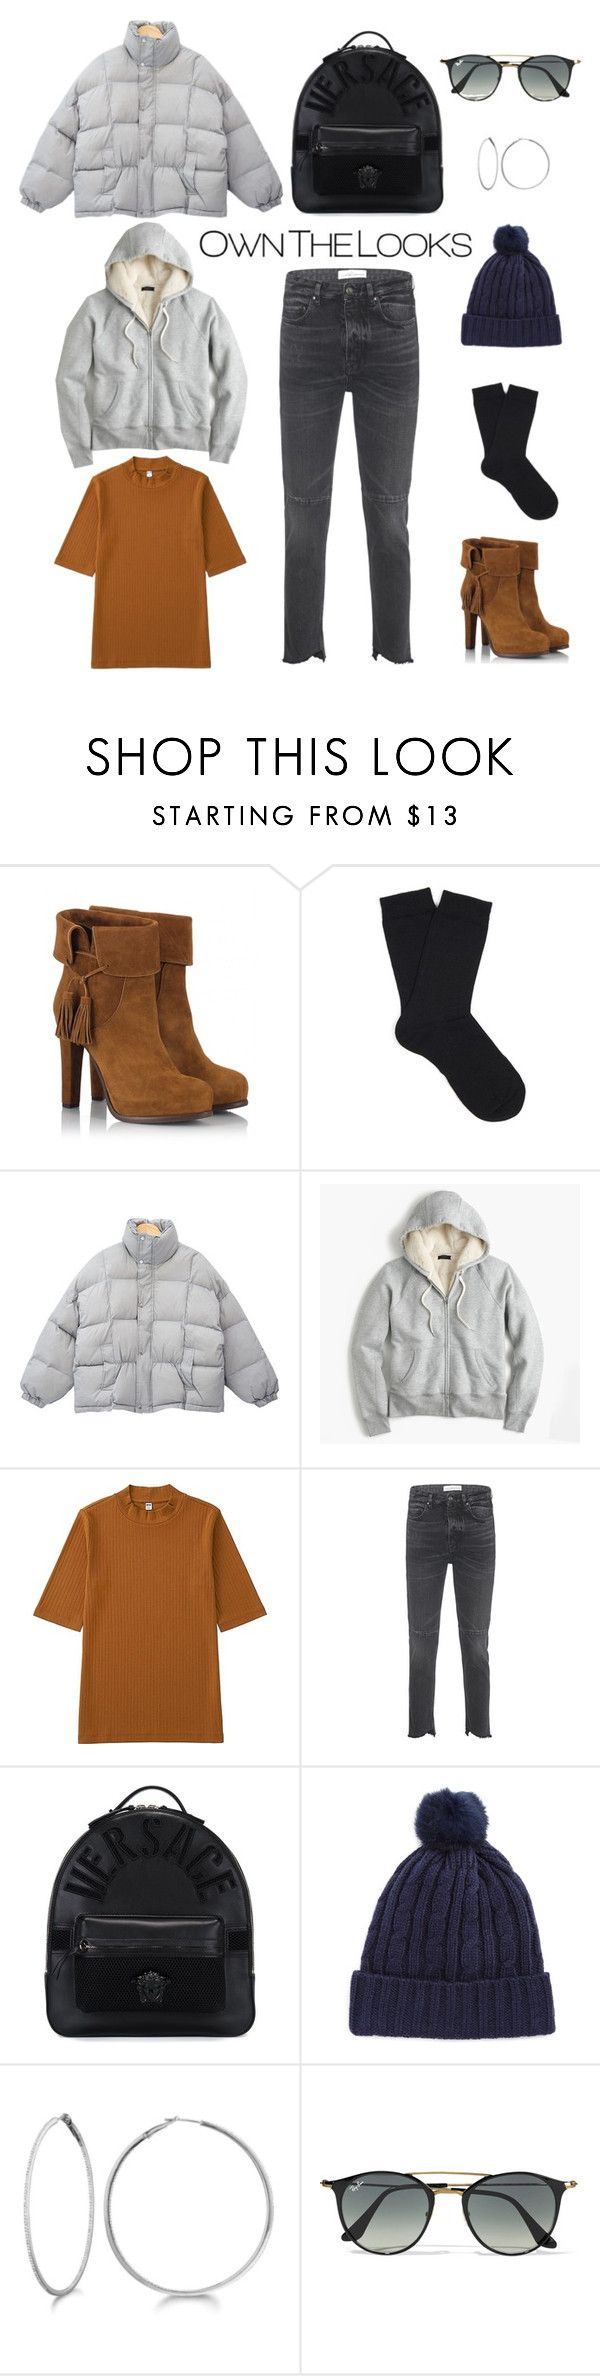 """""""Opening Trends for Winter"""" by fikinajhn ❤ liked on Polyvore featuring Fratelli Karida, Falke, J.Crew, Uniqlo, Golden Goose, Versace, Marcus Adler, Allurez and Ray-Ban"""